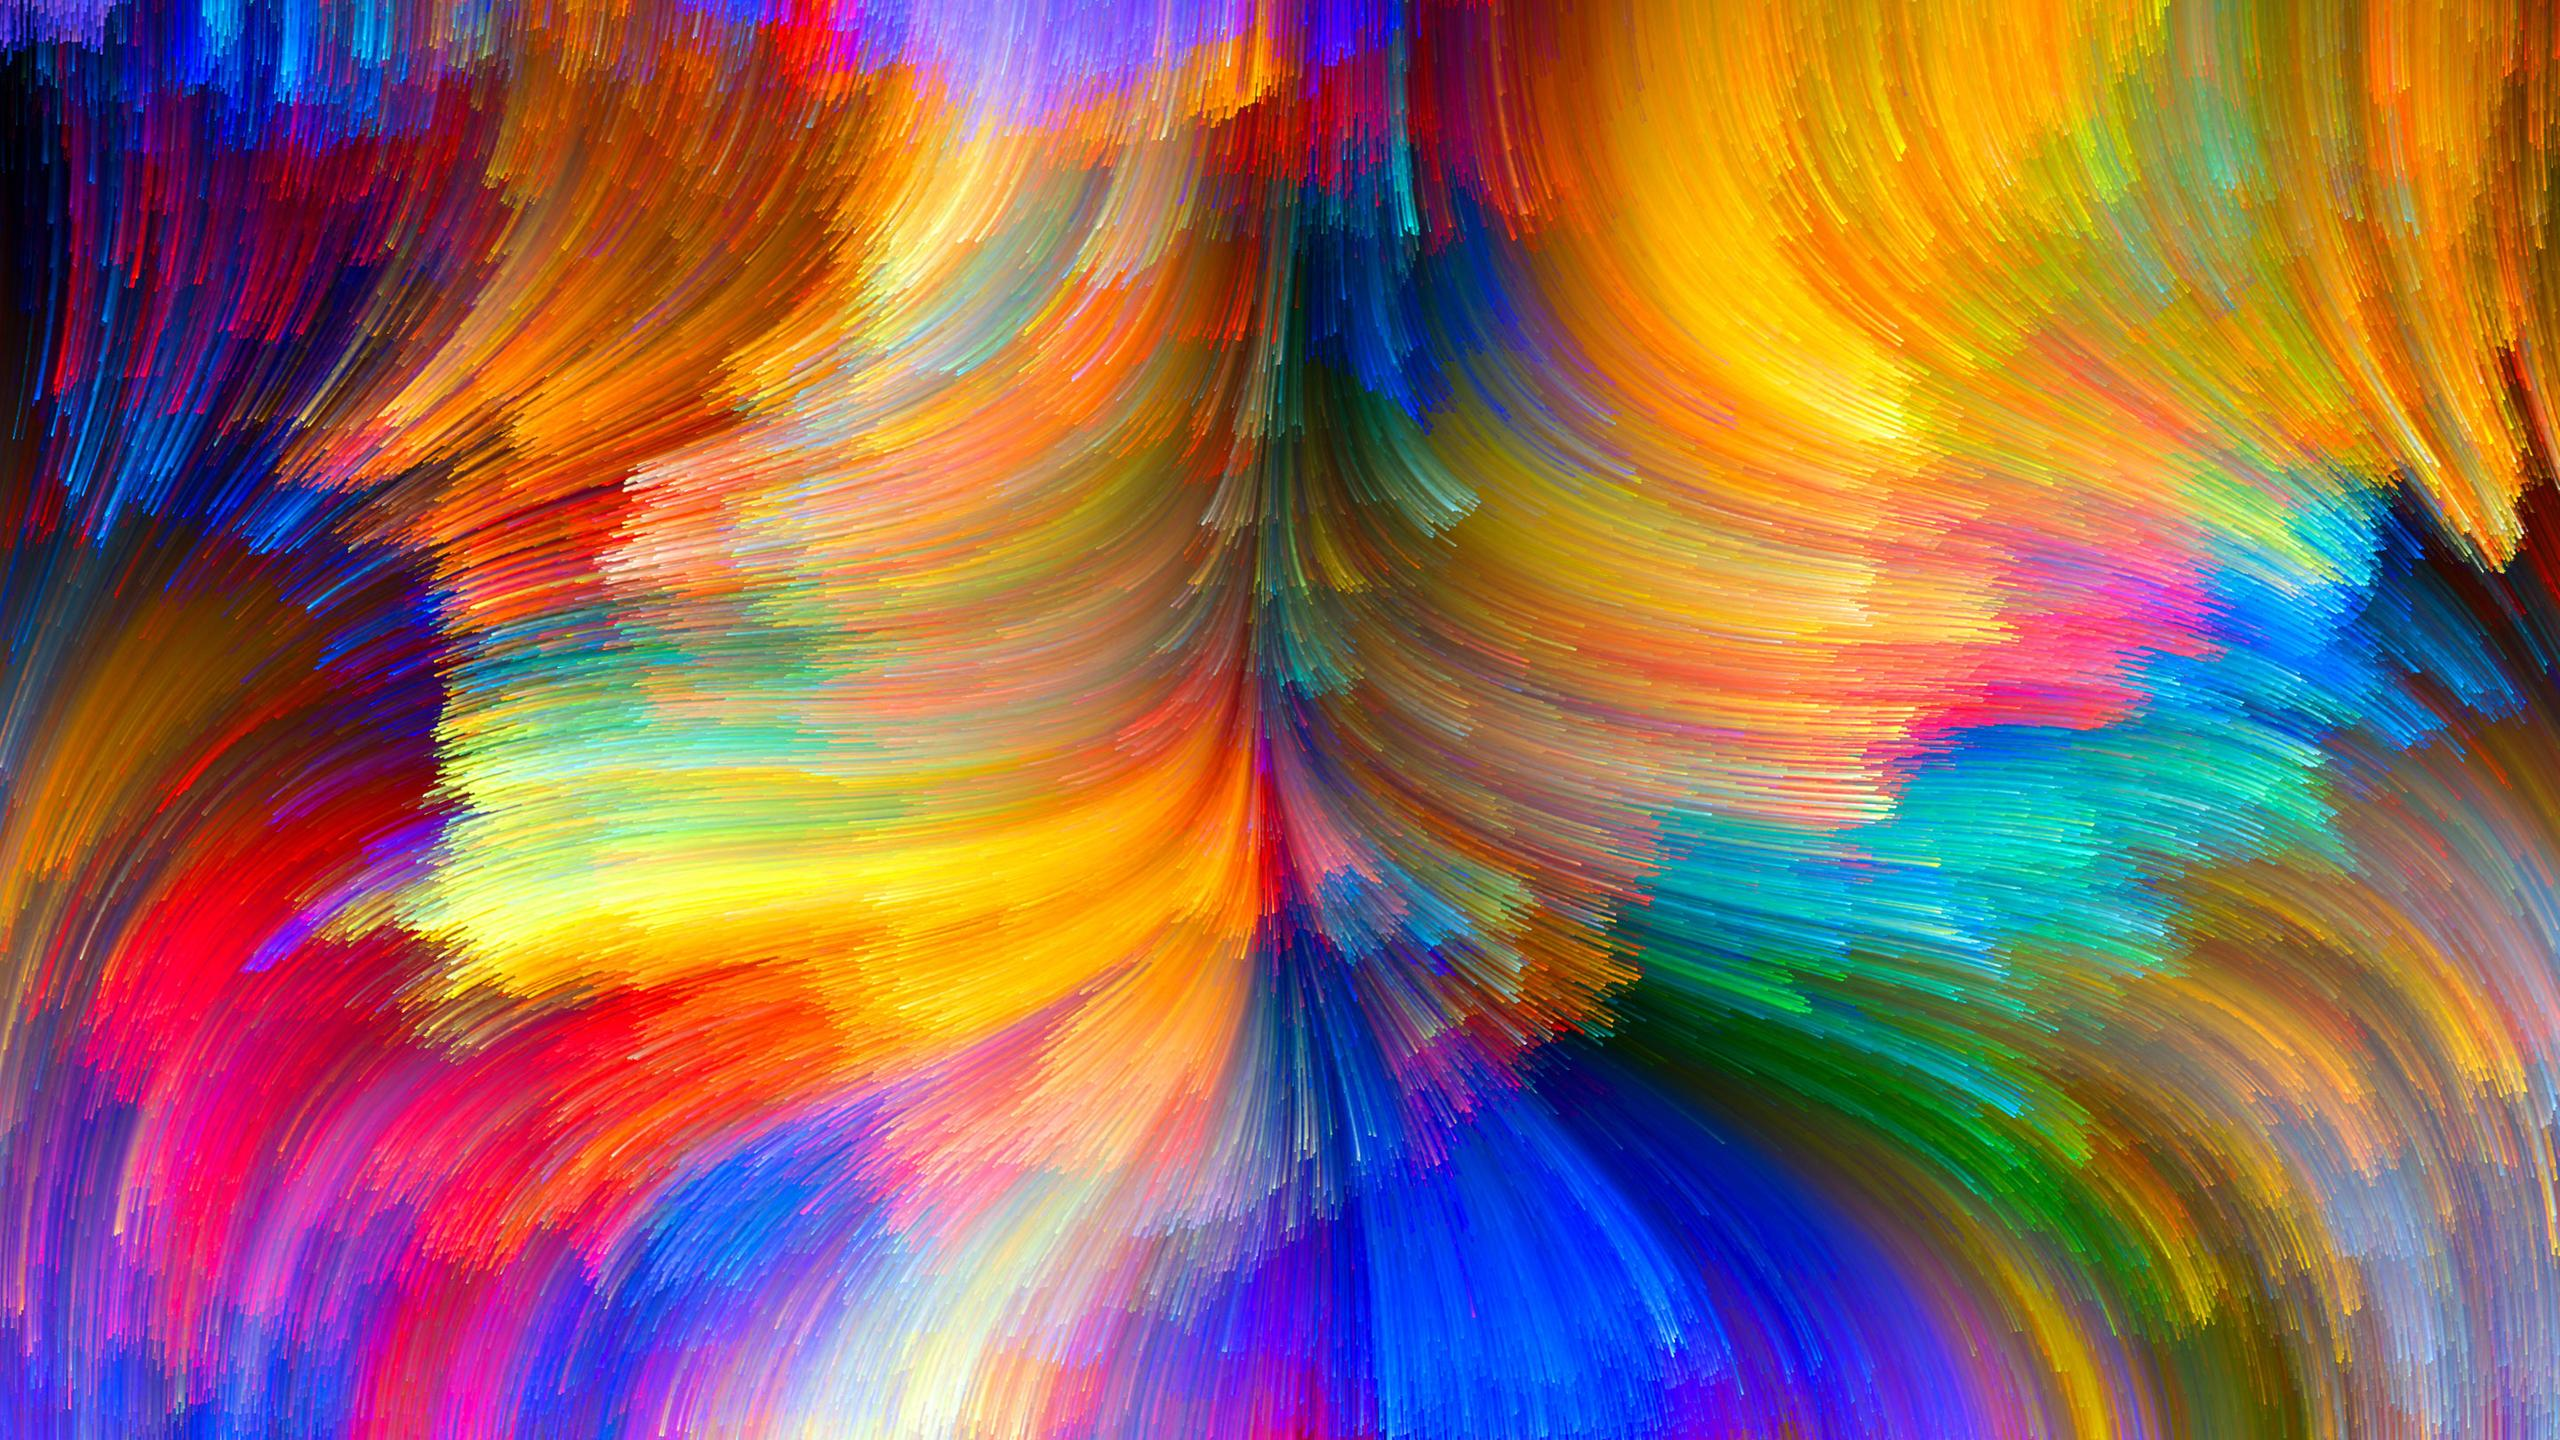 Colorful Food Wallpaper Free Download: Abstract Colorful Wallpaper